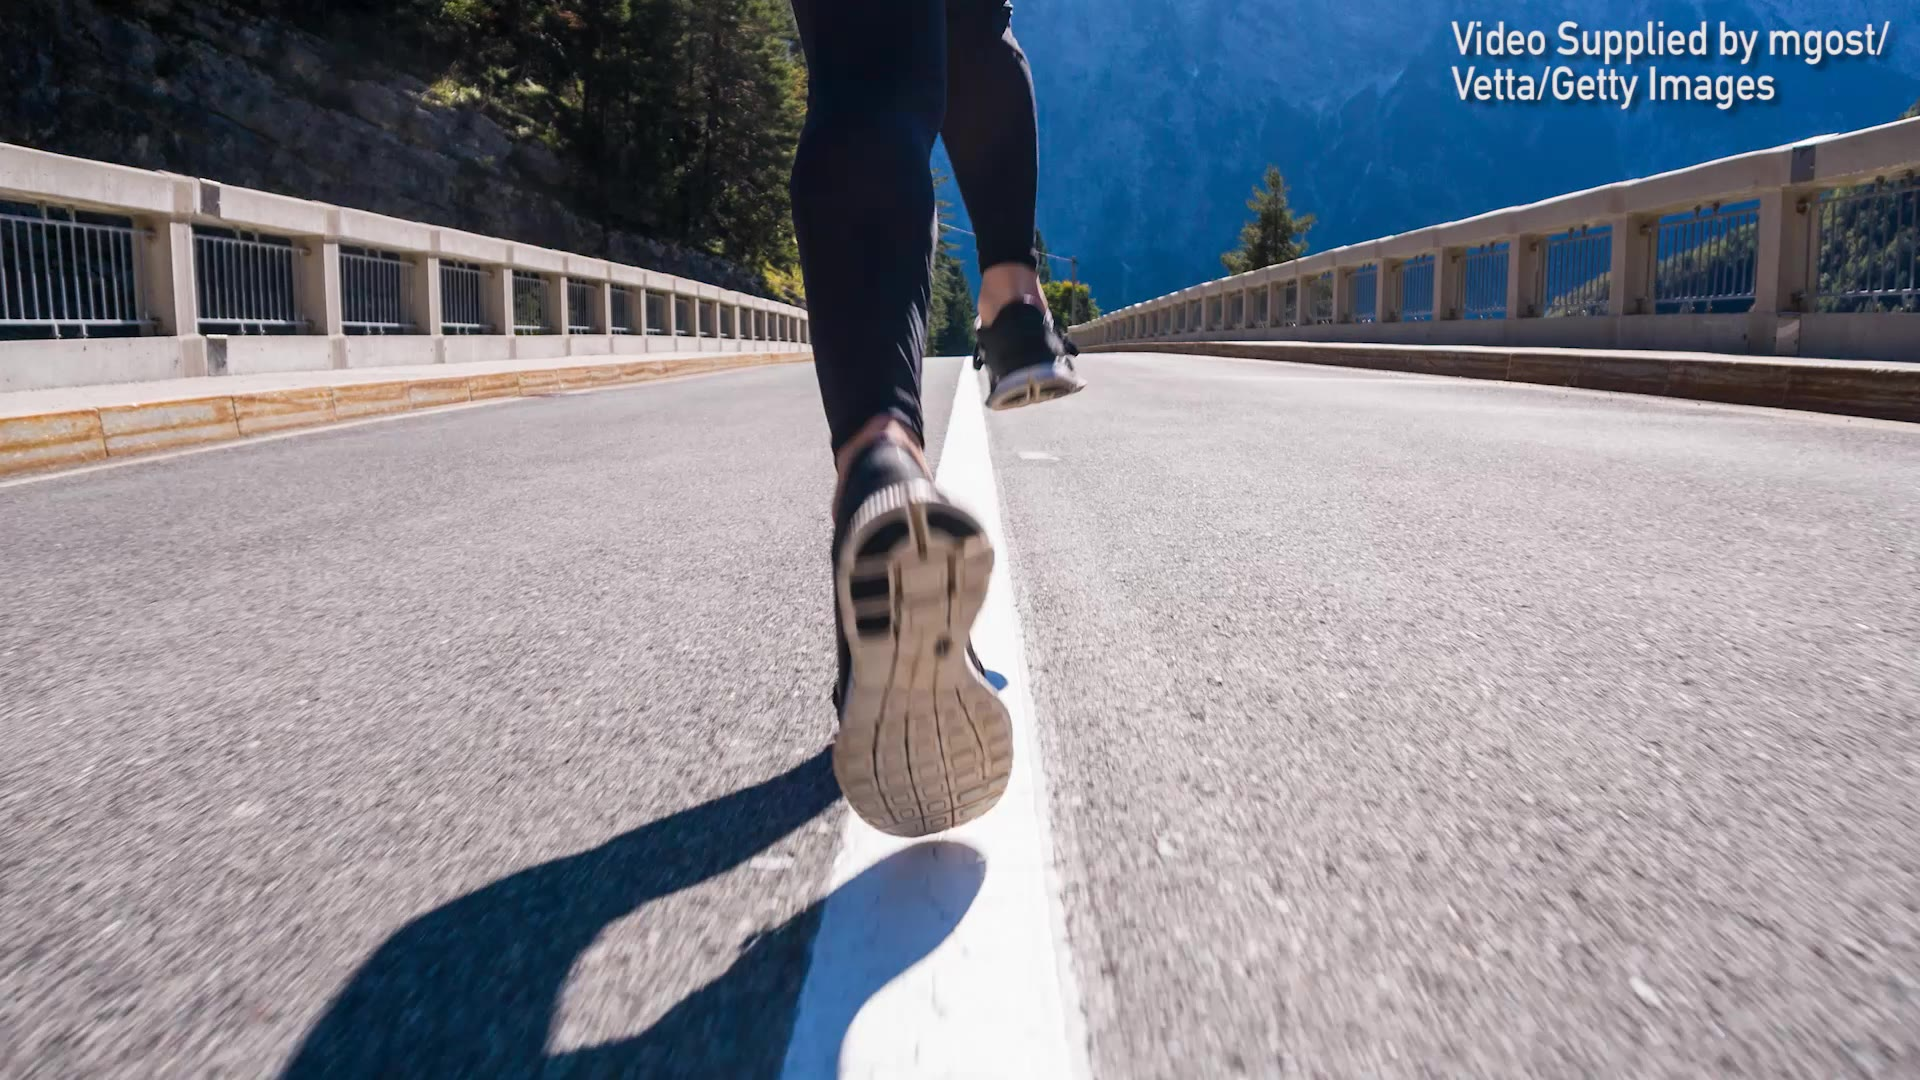 How to Stay Safe While Jogging Alone